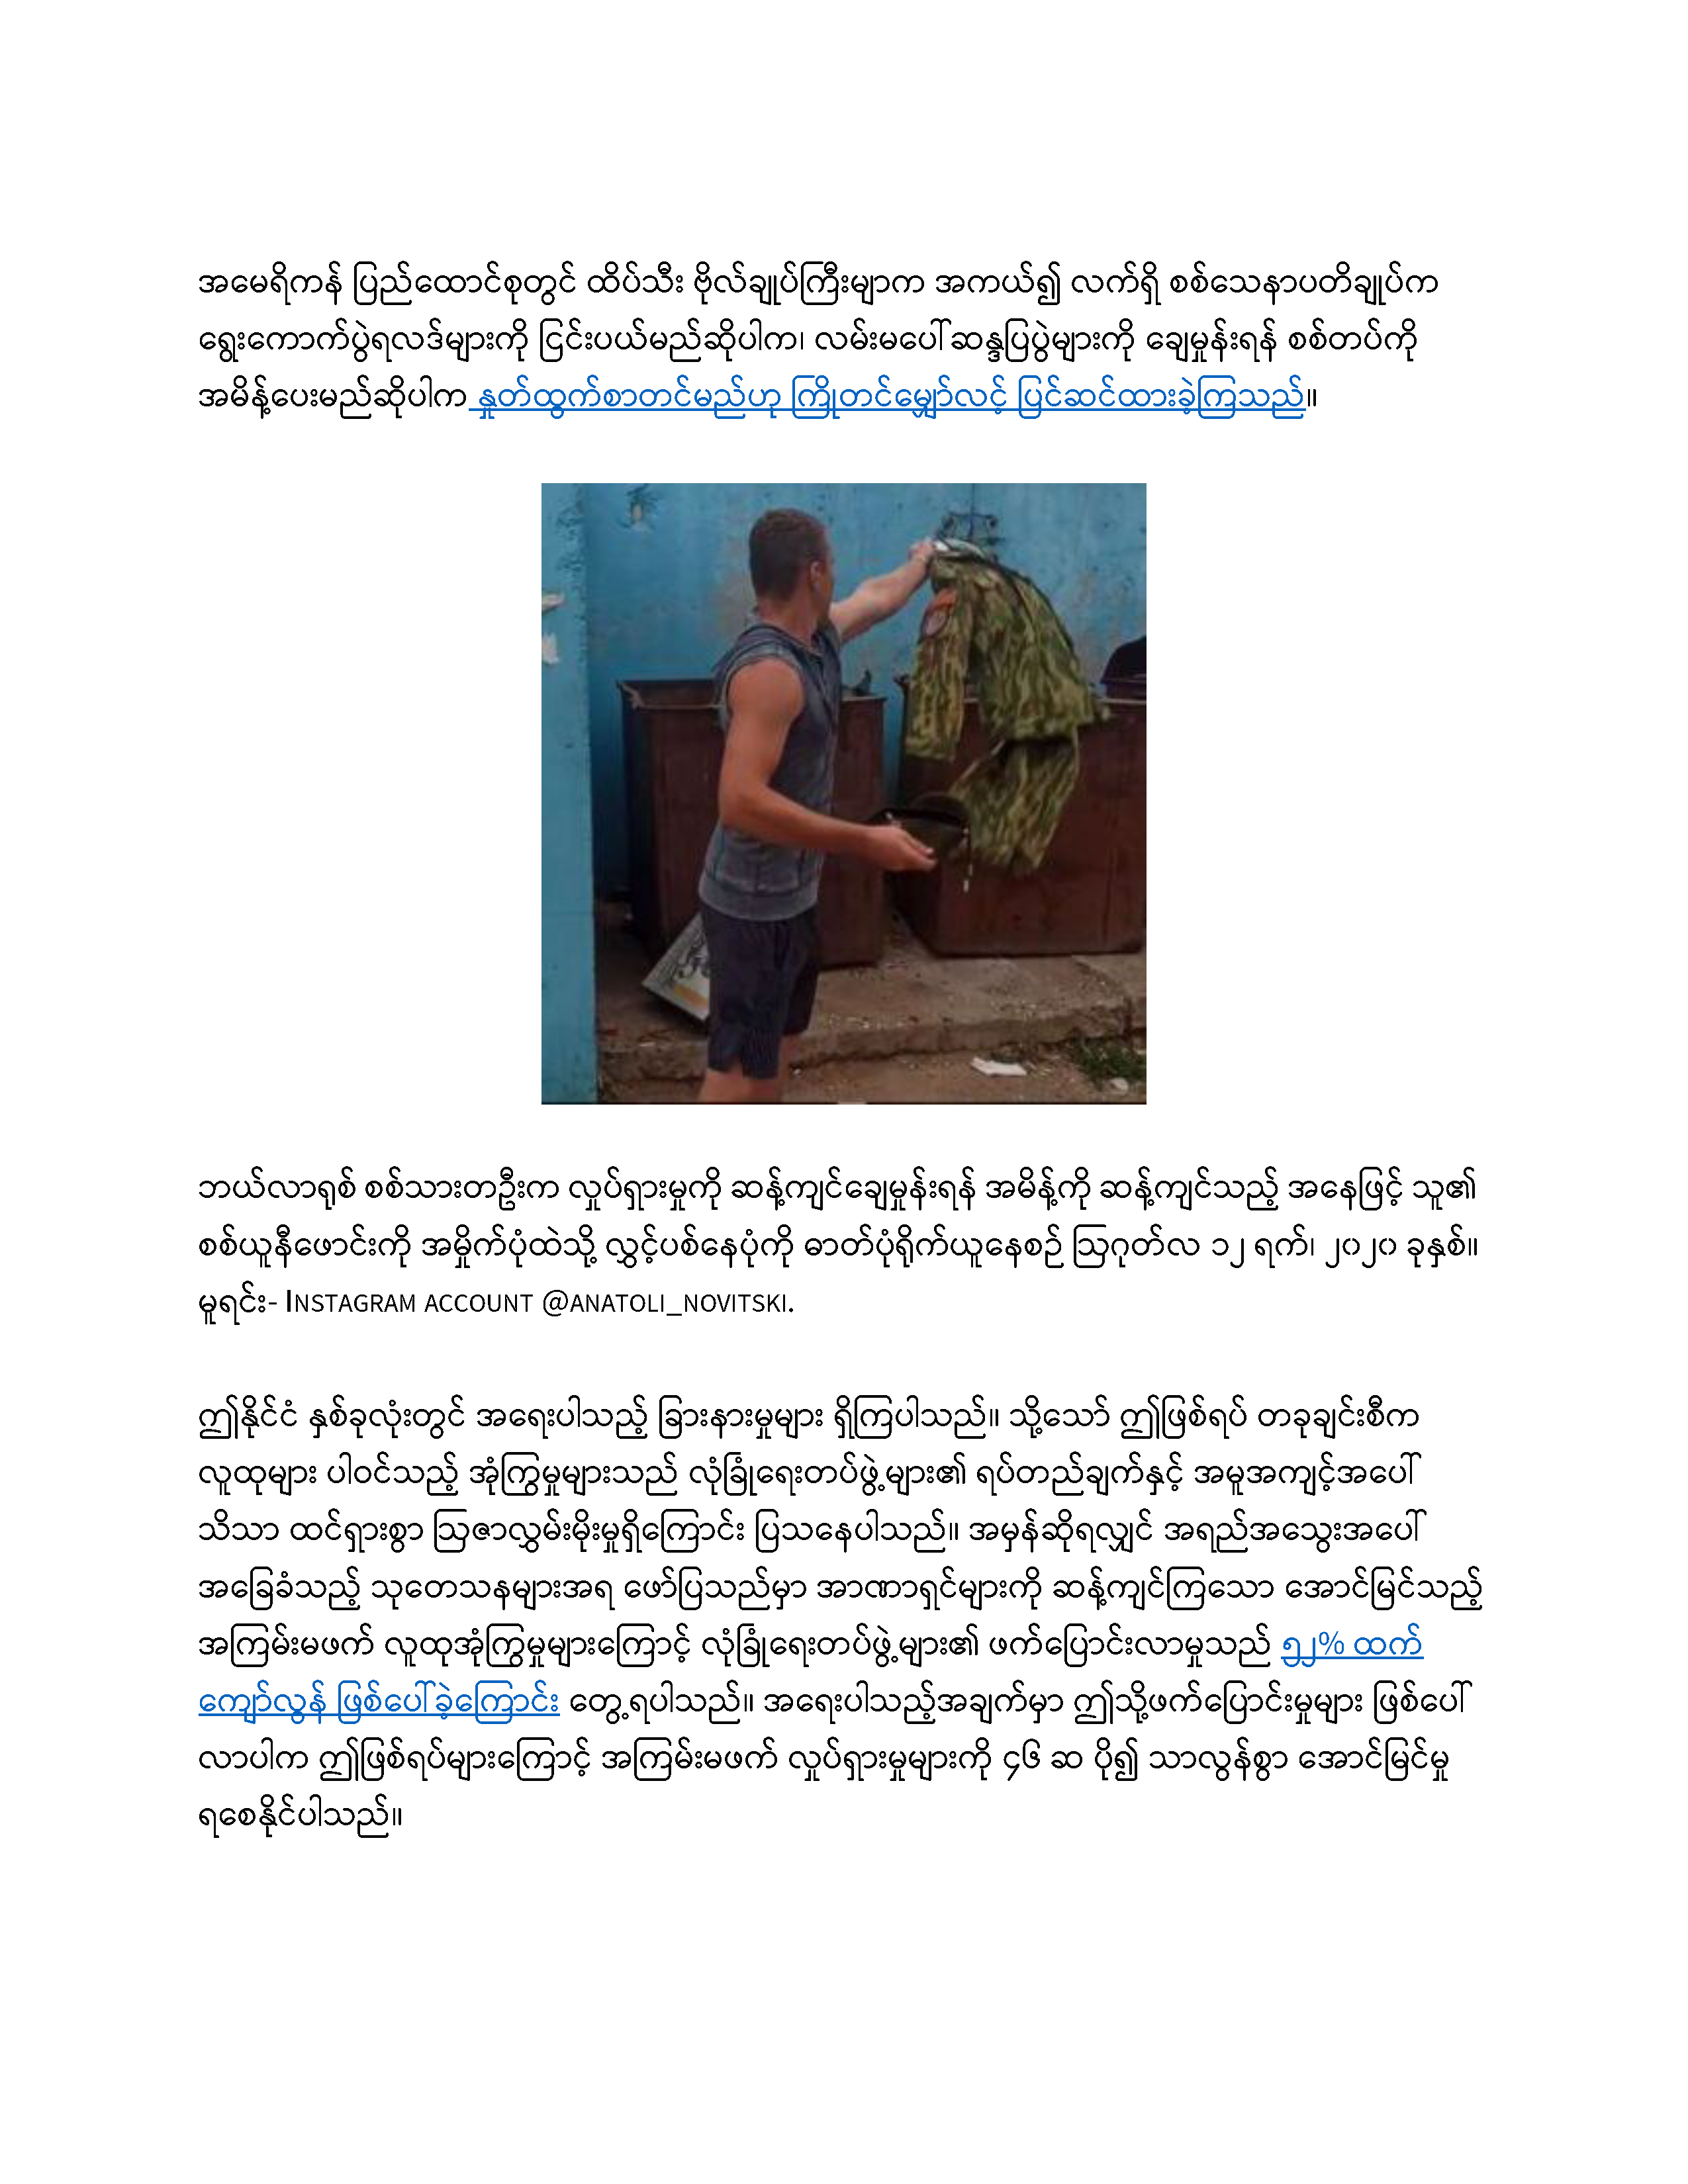 For Members of Security Forces: A Guide to Supporting Pro-Democracy Movements (Burmese)